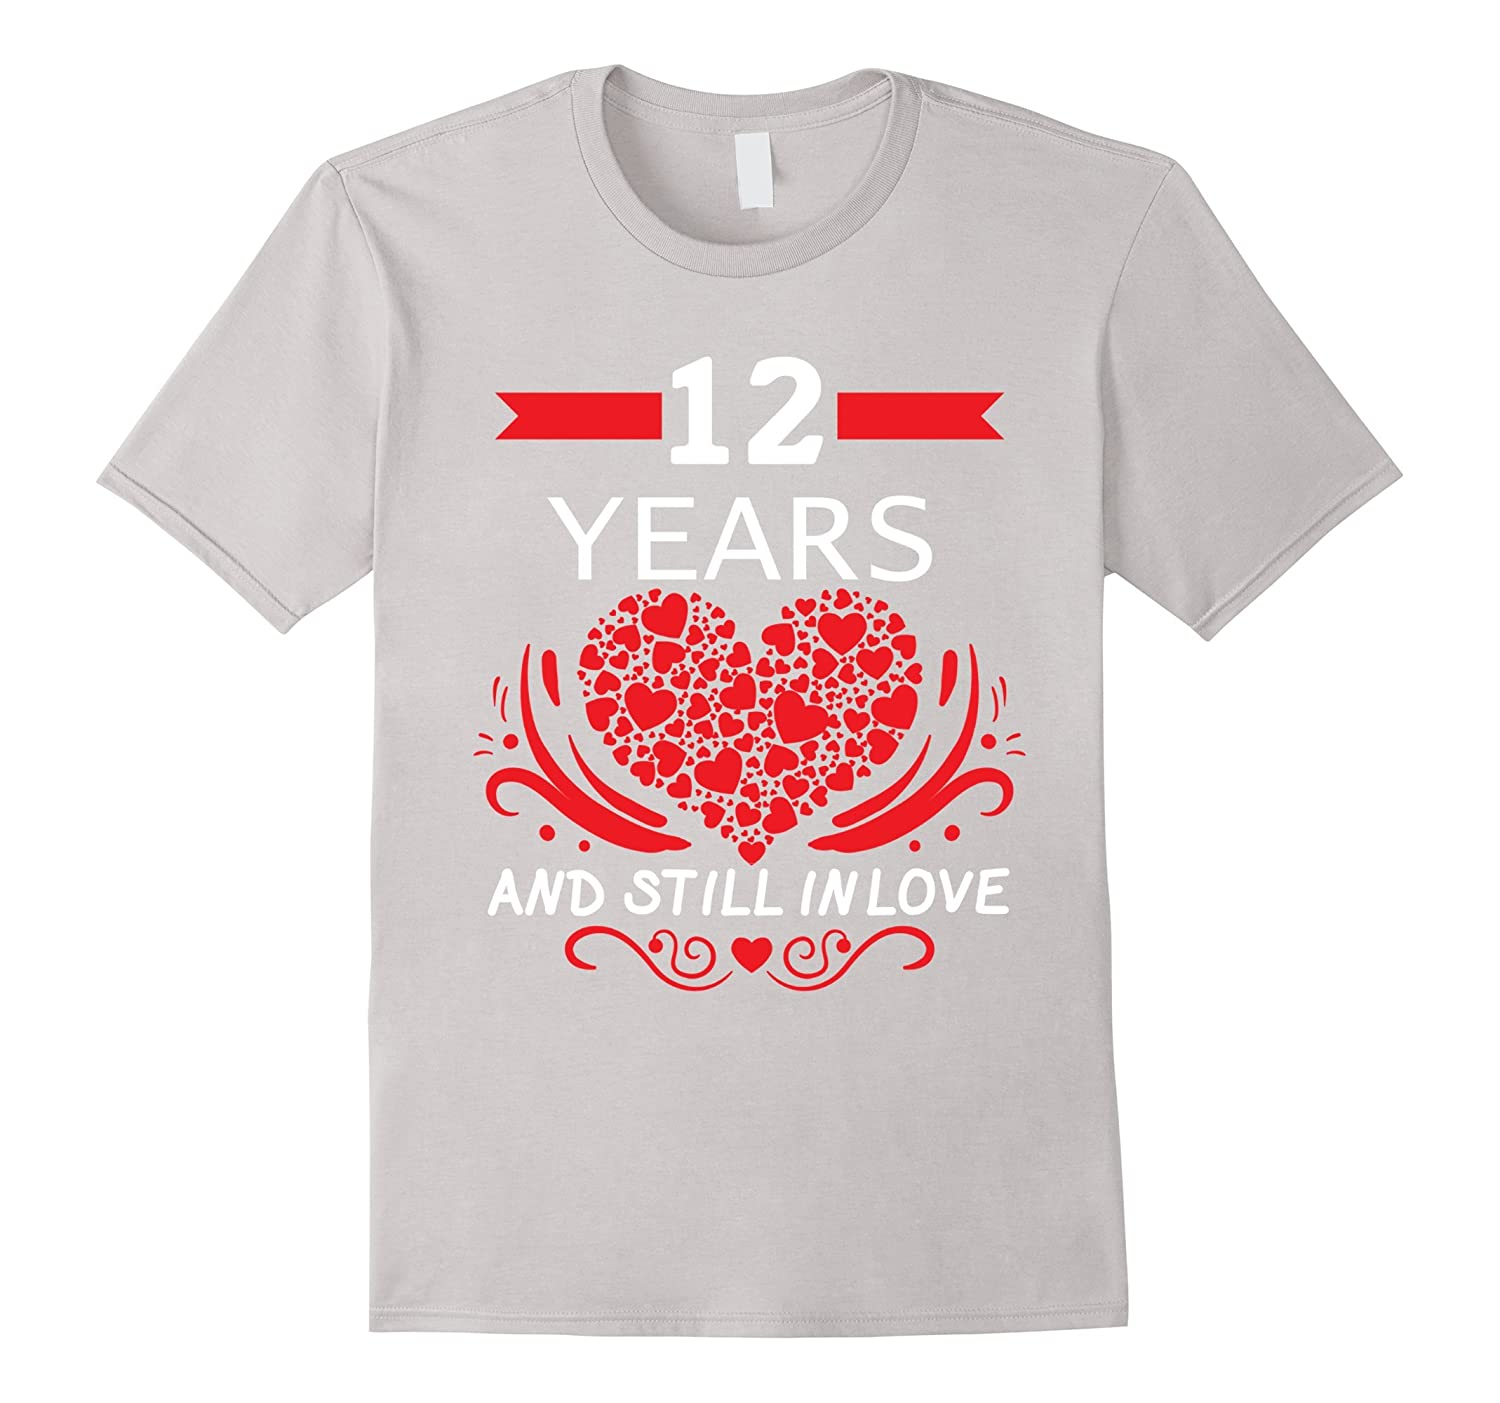 12th Wedding Anniversary Gifts 12 Year Shirt For Him And Her Bn